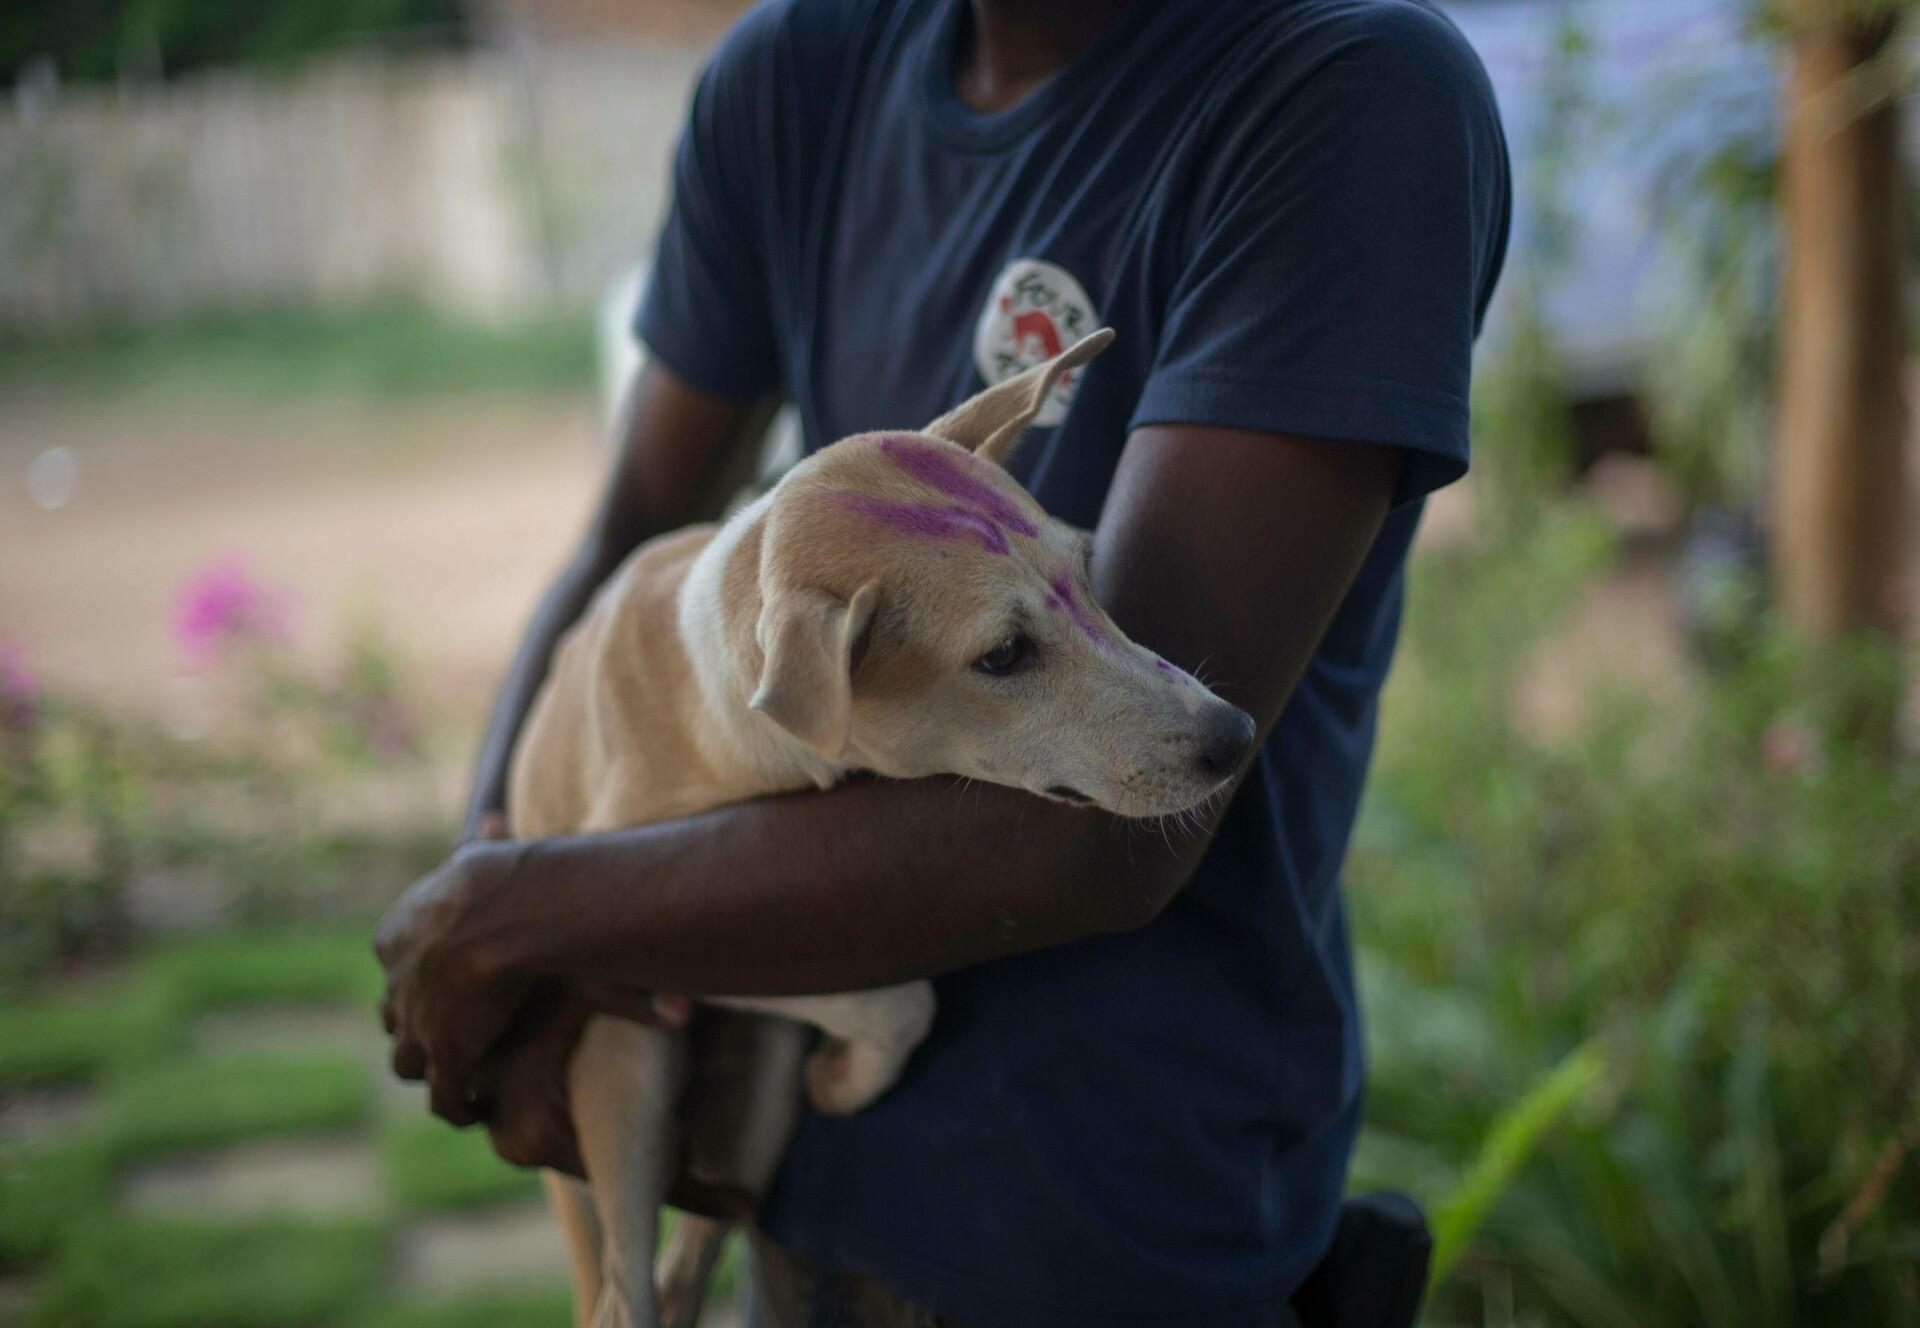 Over 50,000 animals have been vaccinated against rabies